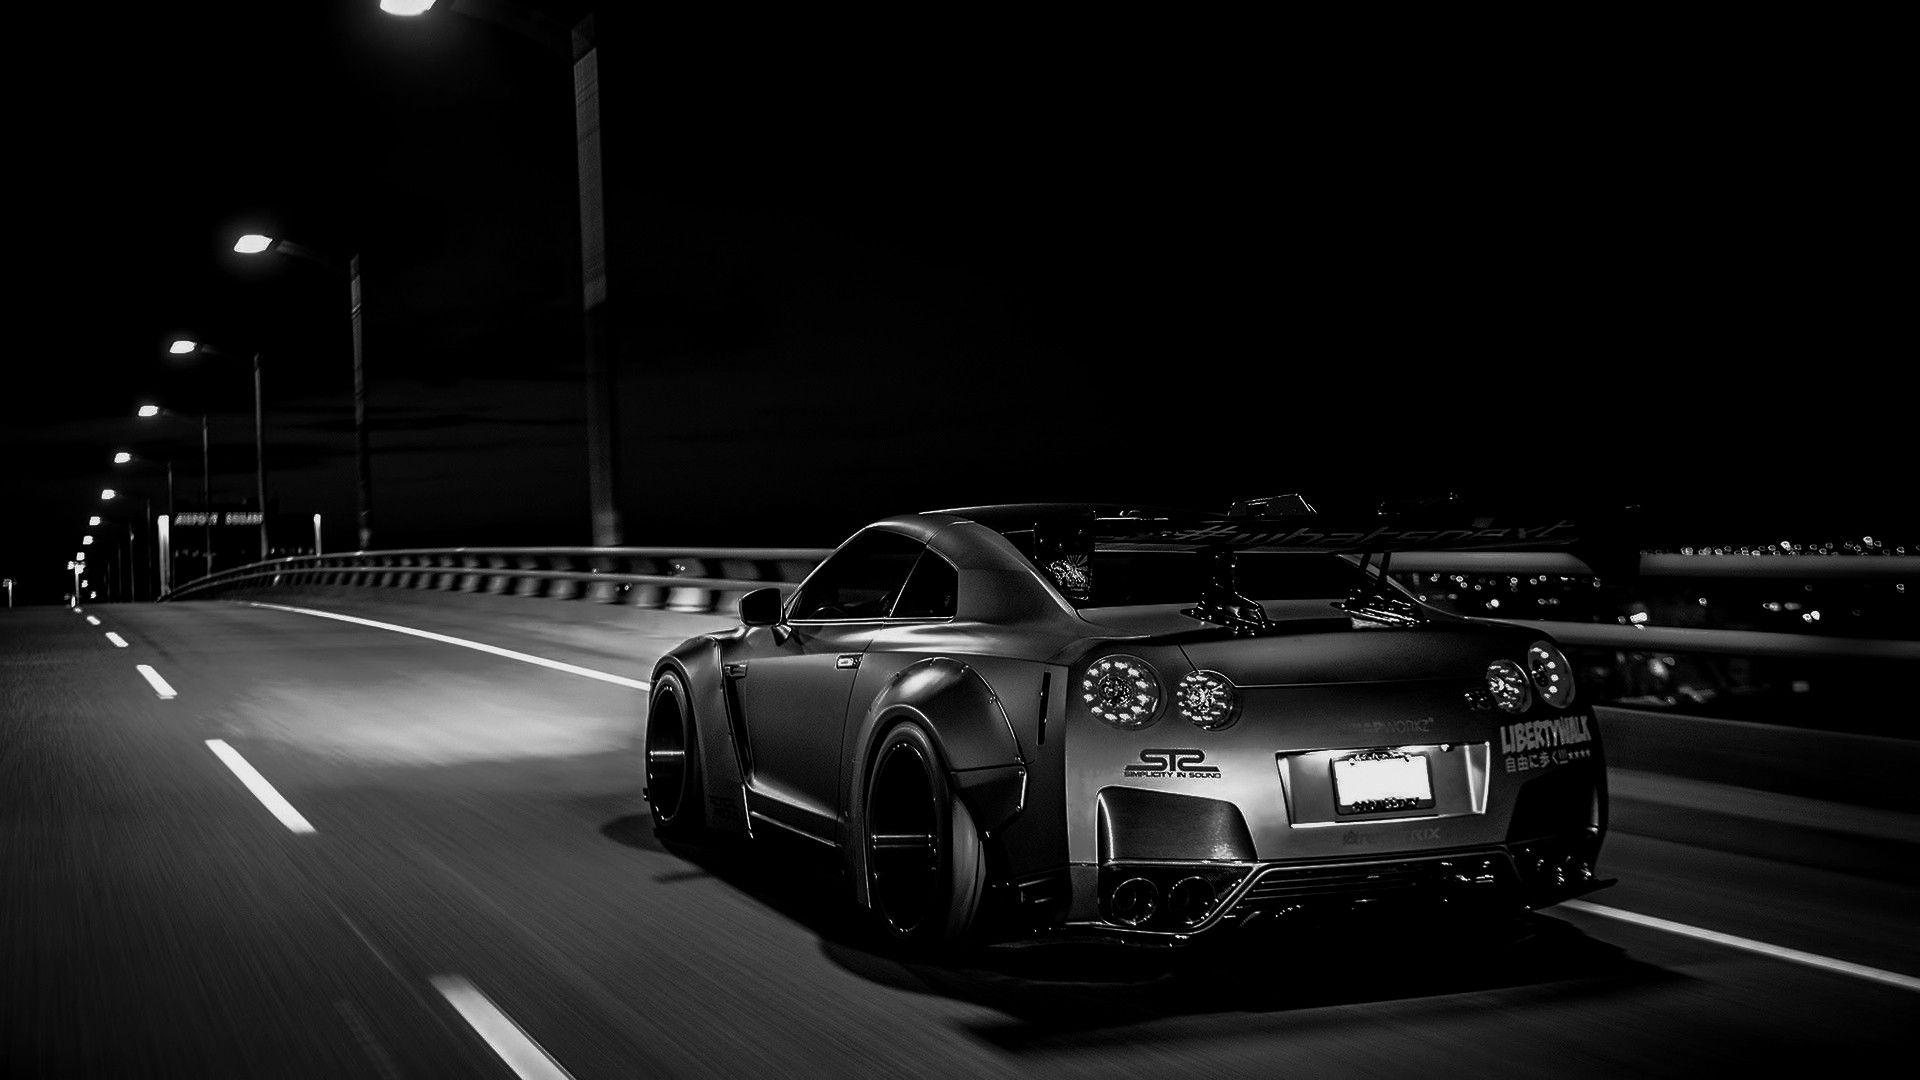 Nissan nissan deportivos nissan gt r nissan gt r r35 tuning cars - Explora Nissan R35 Jdm Y Mucho M S Jdm Wallpapers Wallpaperup 1920 1080 R35 Gtr Wallpapers 42 Wallpapers Adorable Wallpapers